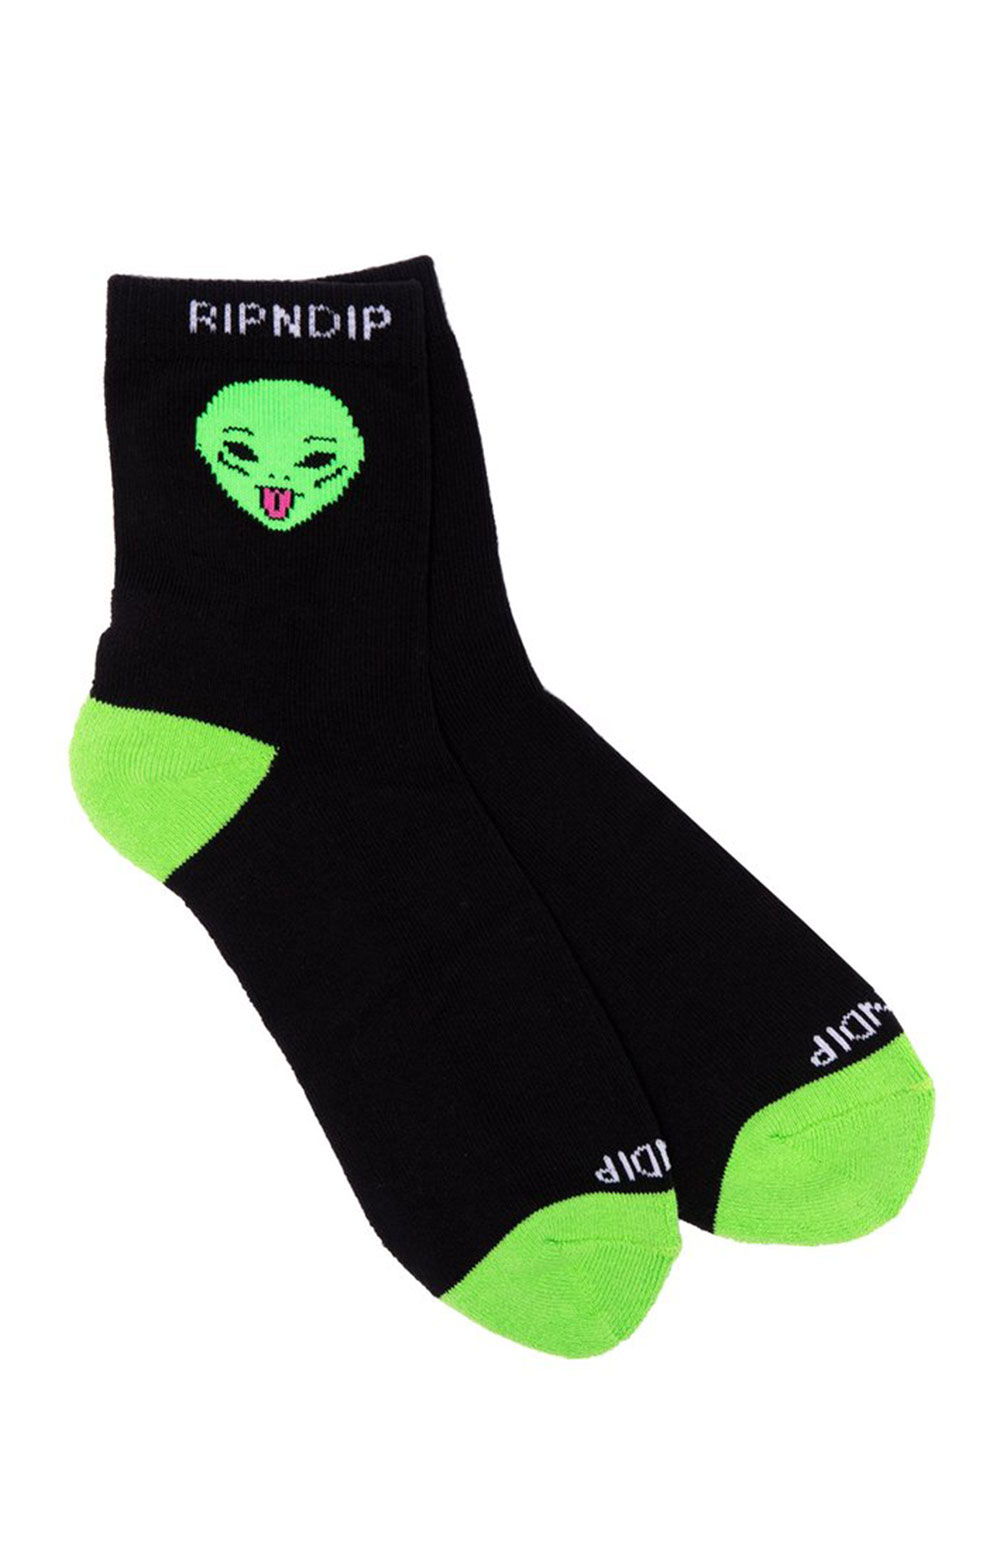 We Out Here Mid Socks - Black